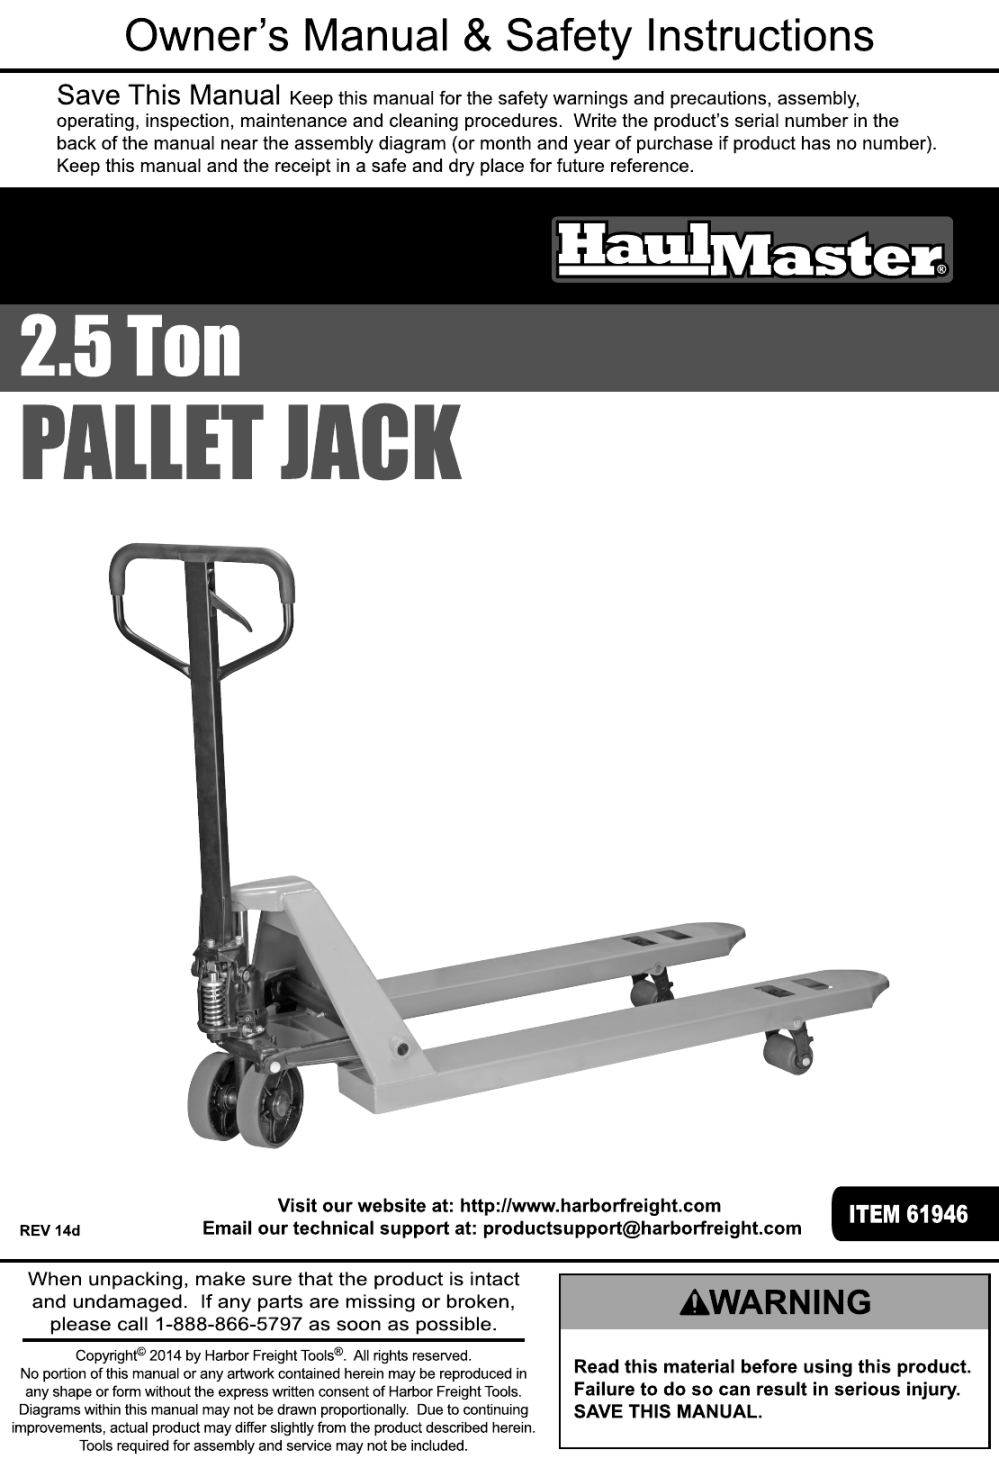 medium resolution of page 1 of 12 manual for the 61946 2 5 ton pallet jack